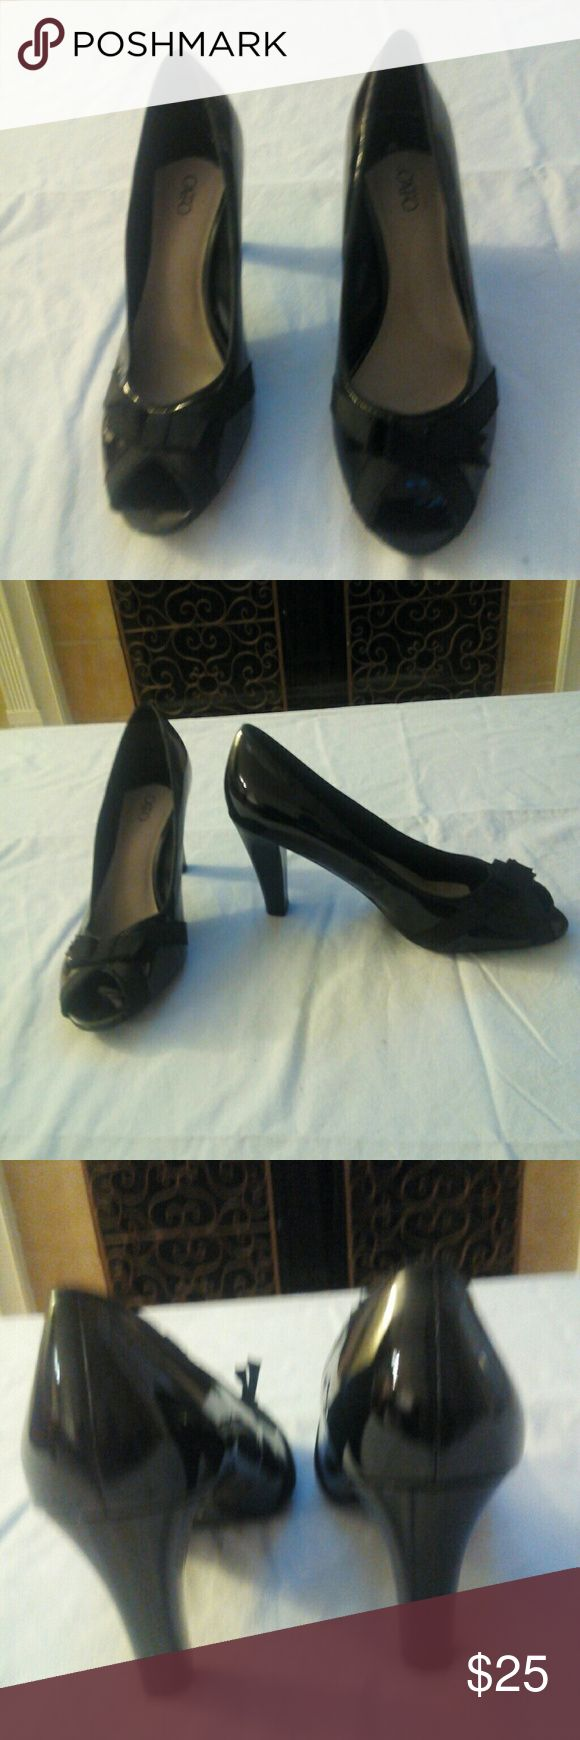 Peep toe pumps Black Patton leather peep toe pumps with a 3inch heel and a bow at the toe Cato Shoes Heels